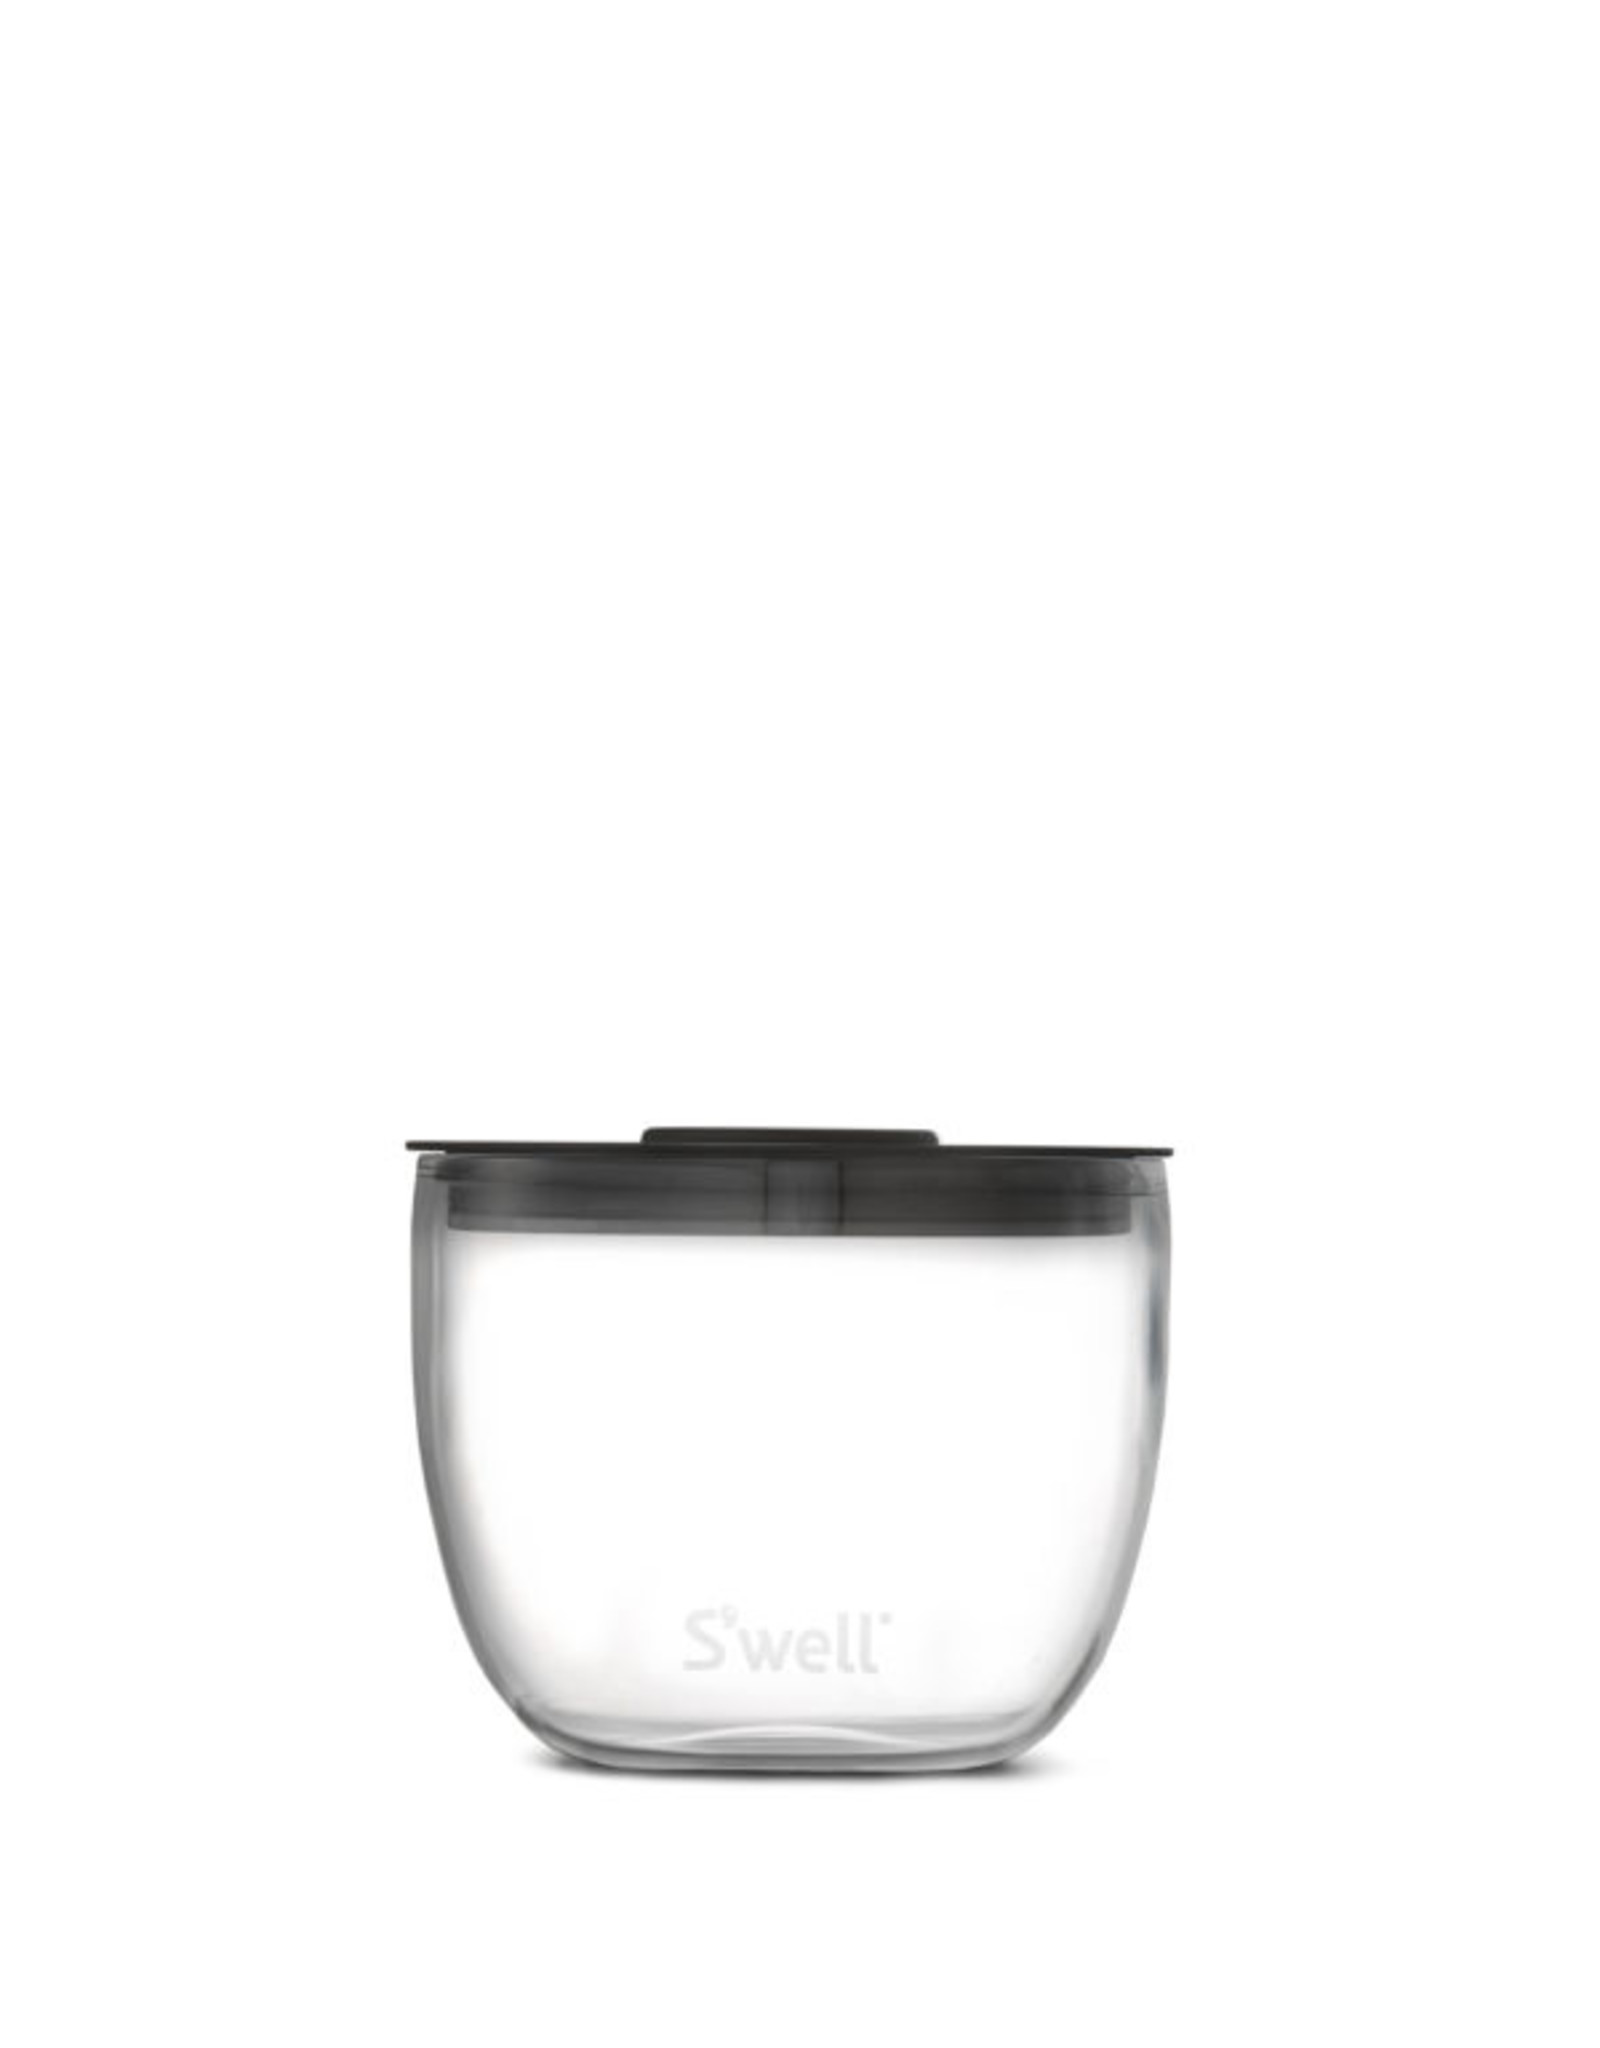 S'Well Eats™ Food Container - Onyx - 16oz